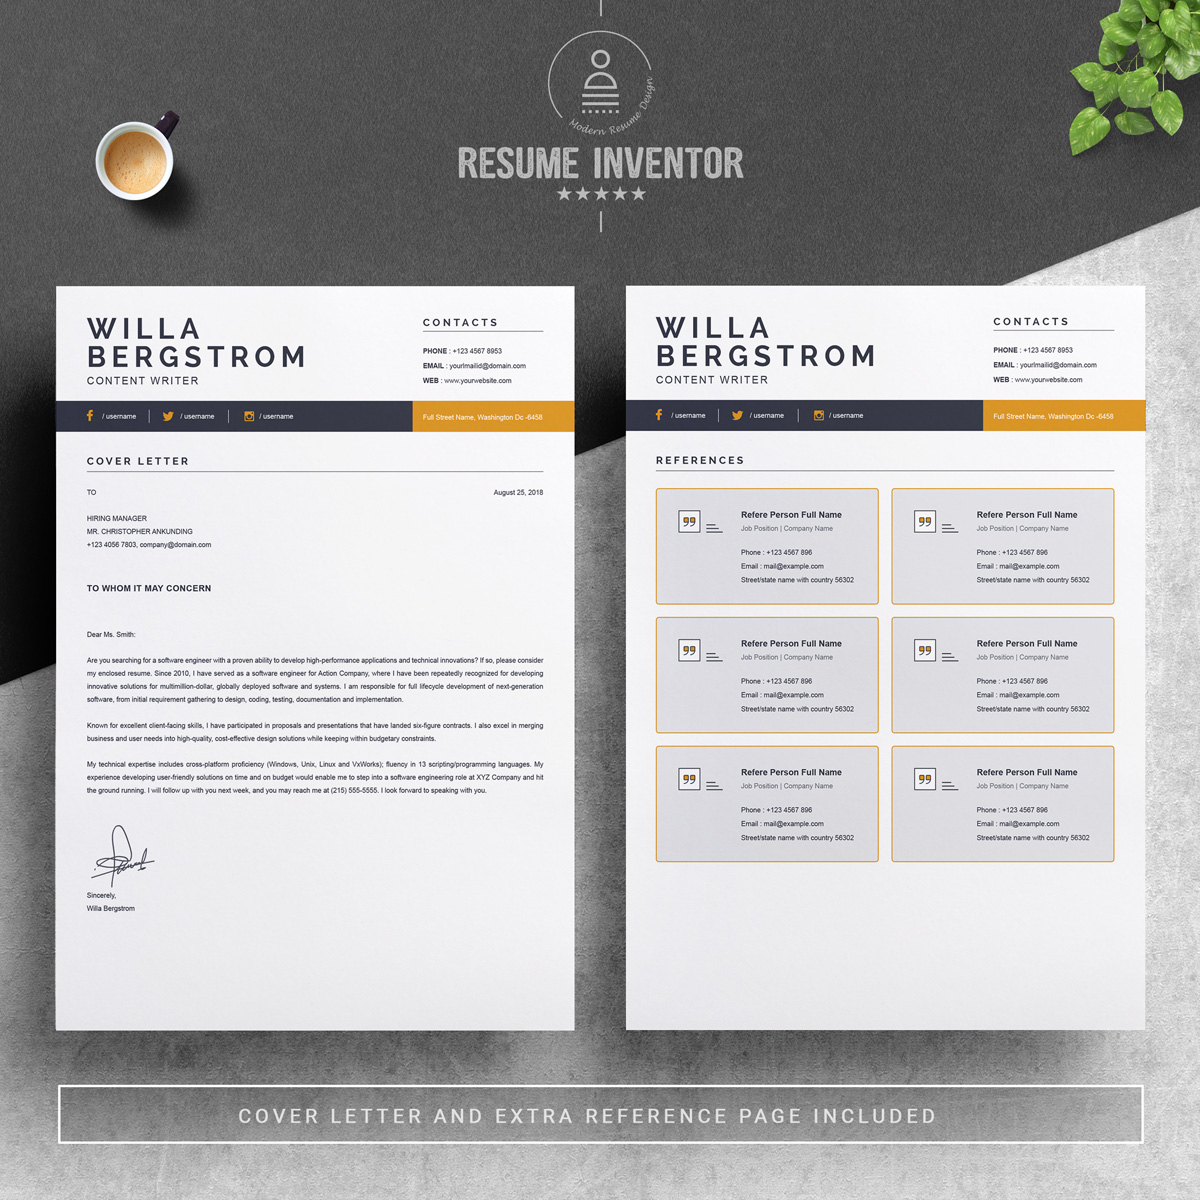 https://s3u.tmimgcdn.com/1860567-1554011321758_03_2-Pages-Free-Resume-Design-Template.jpg